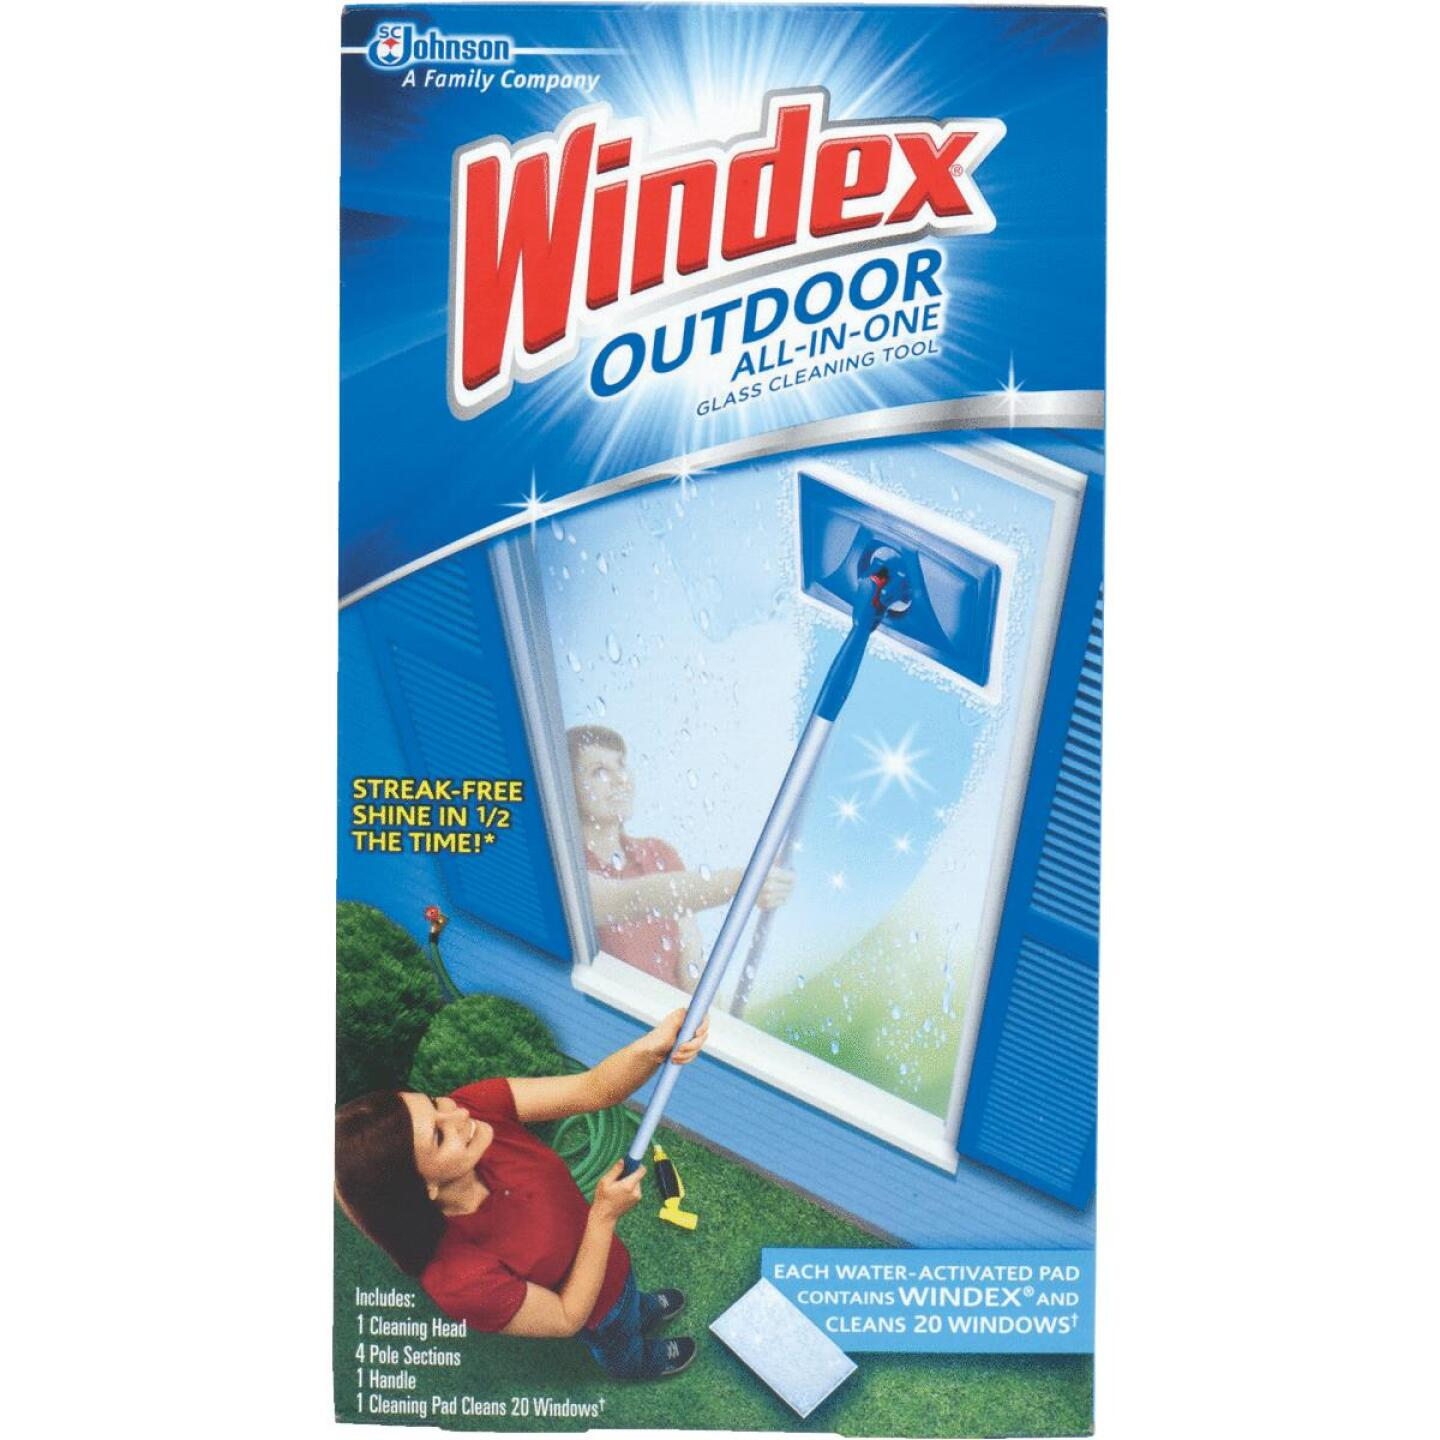 Windex Outdoor All-in-One Glass Cleaning Tool Kit Image 1